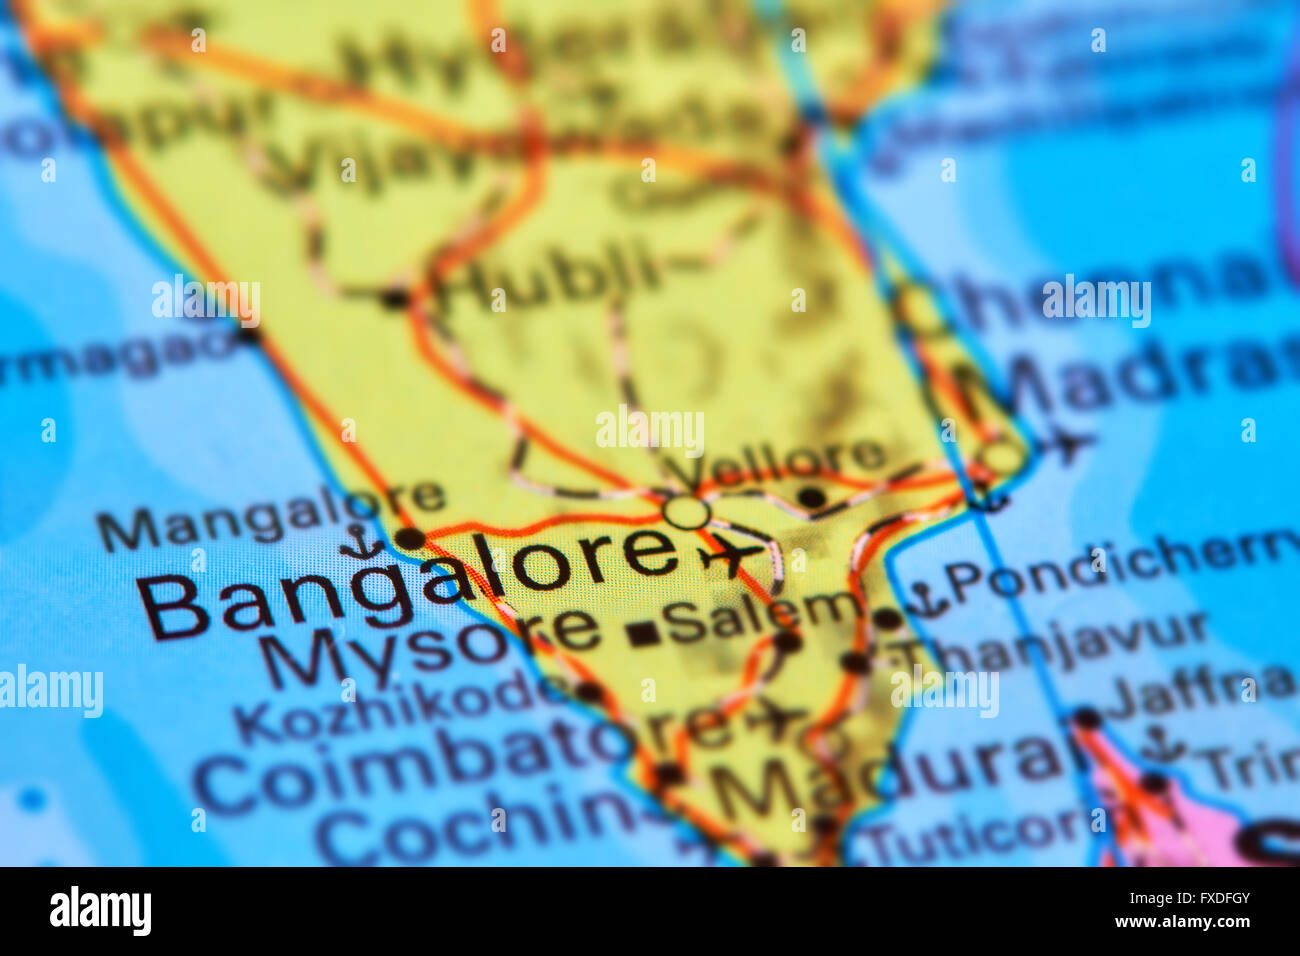 Bangalore city in india asia on the world map stock photo bangalore city in india asia on the world map gumiabroncs Images